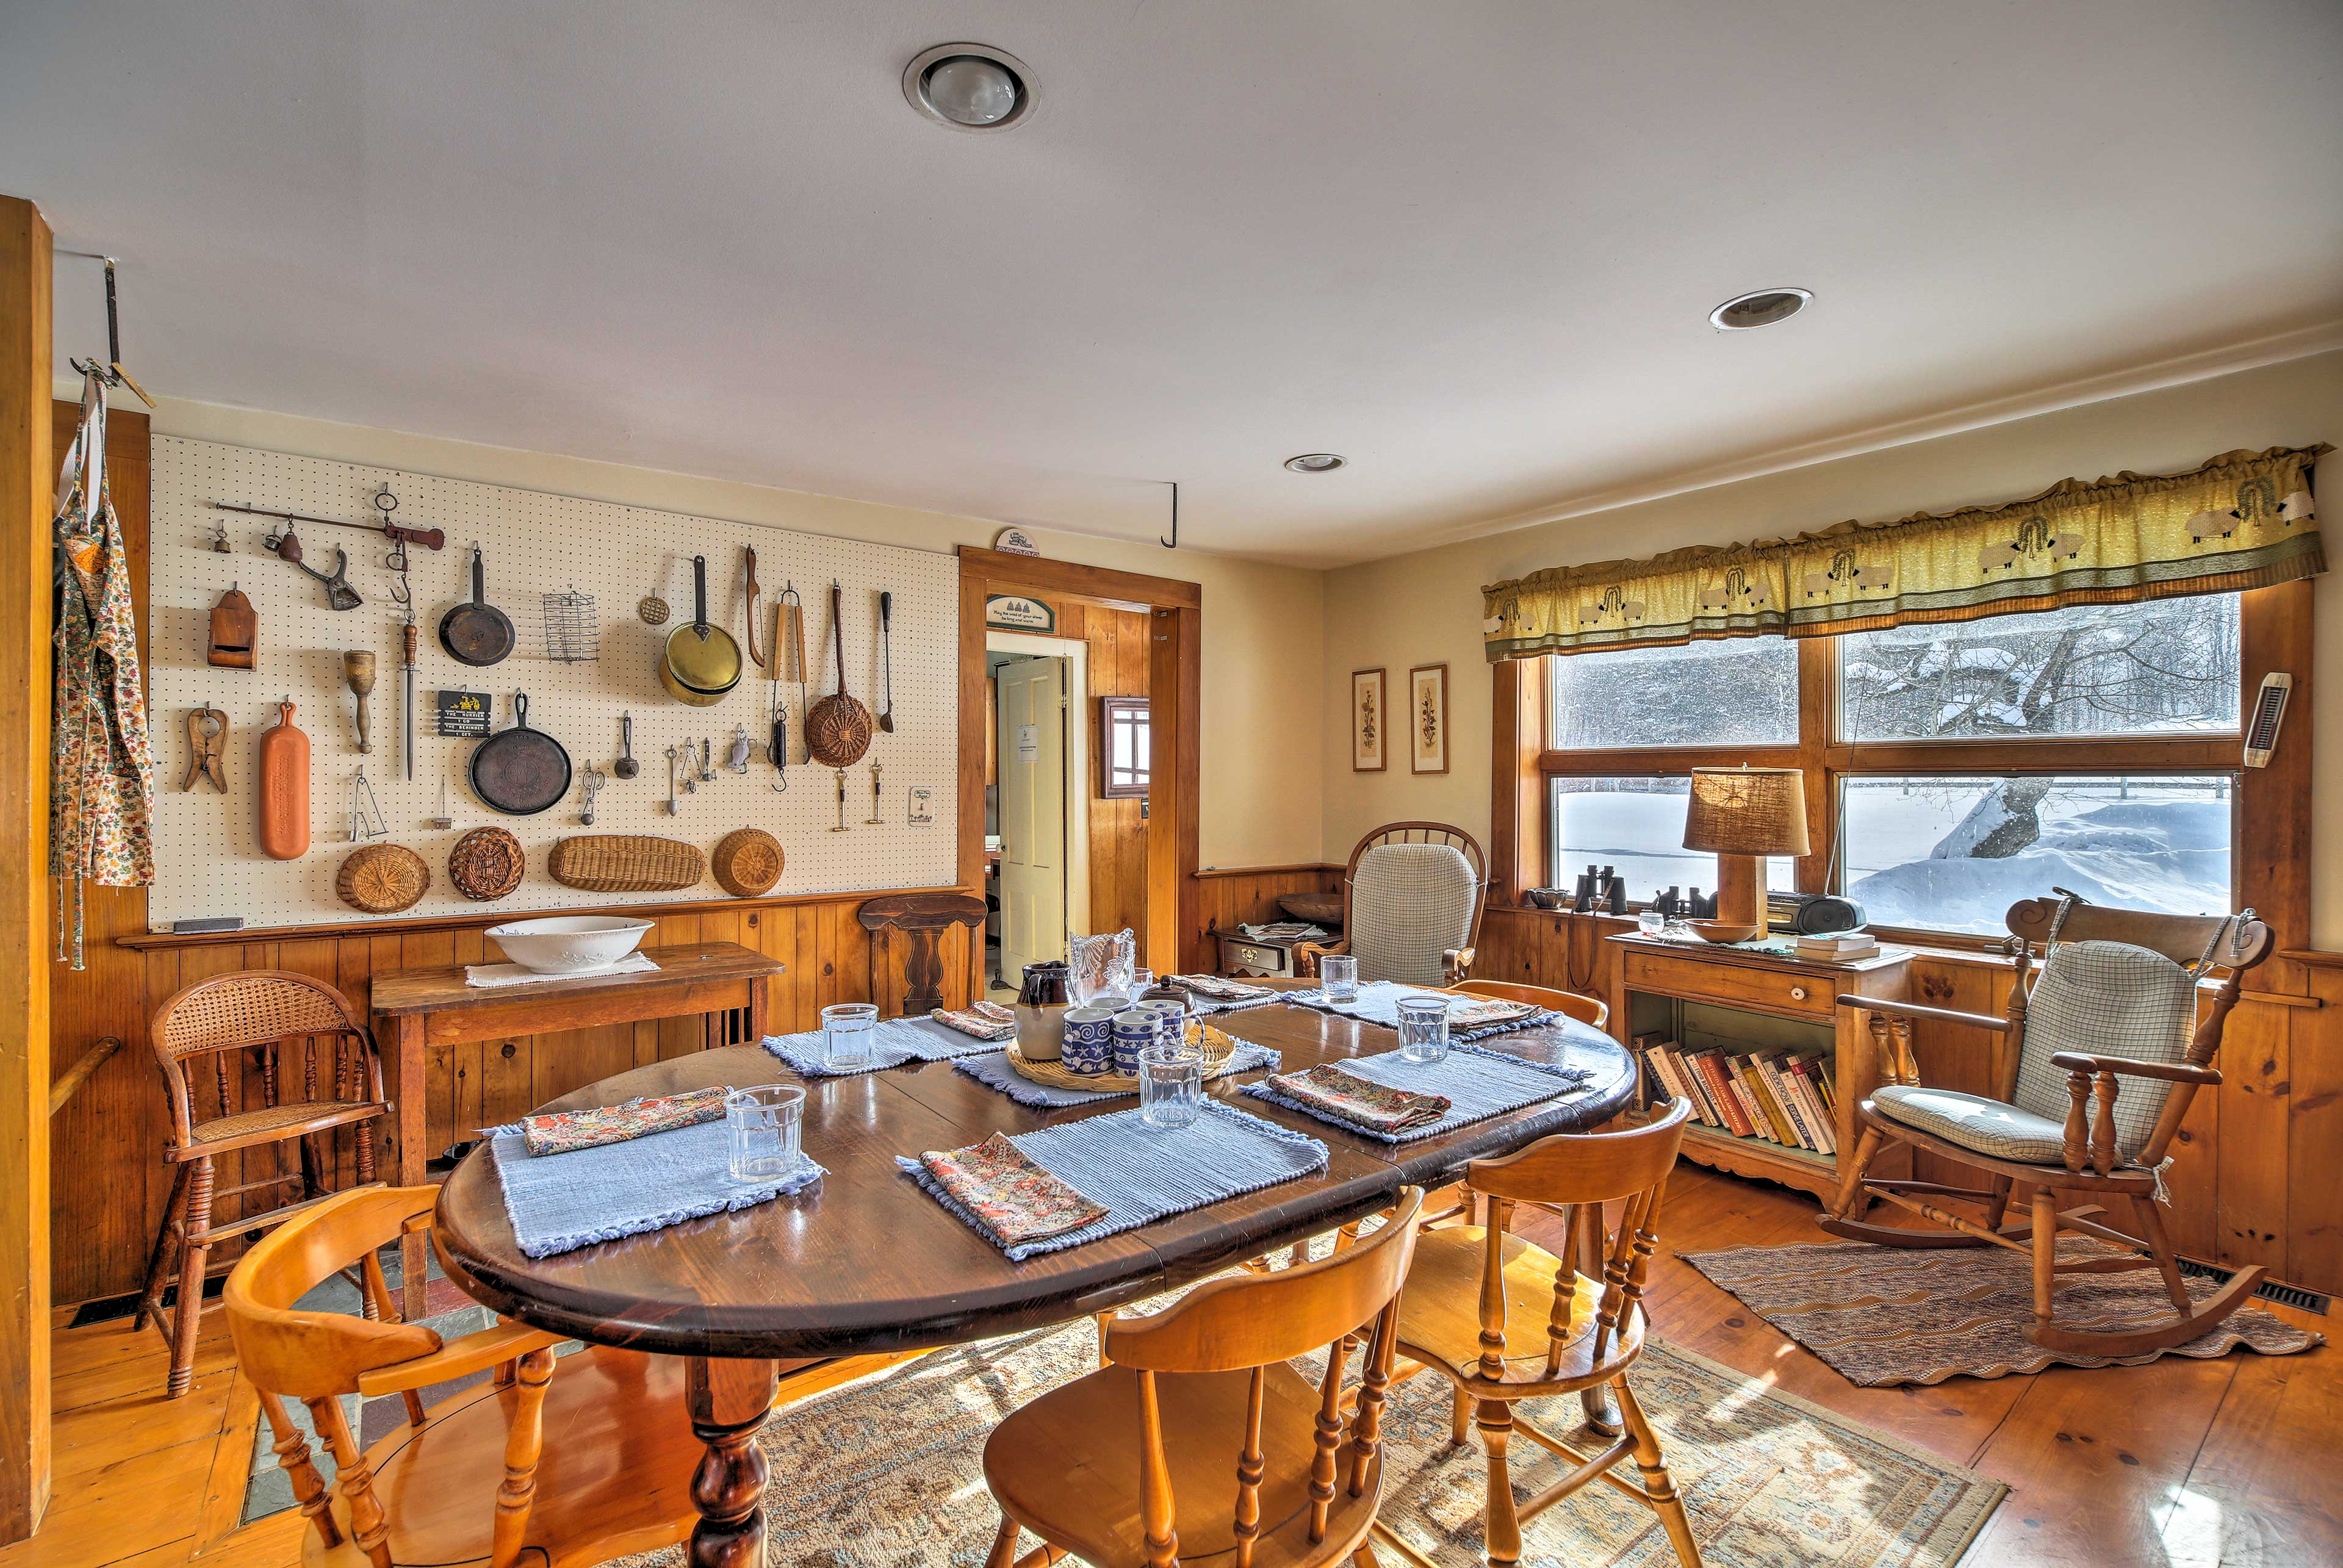 The kitchen table for 6 is yet another great place to enjoy a family meal.